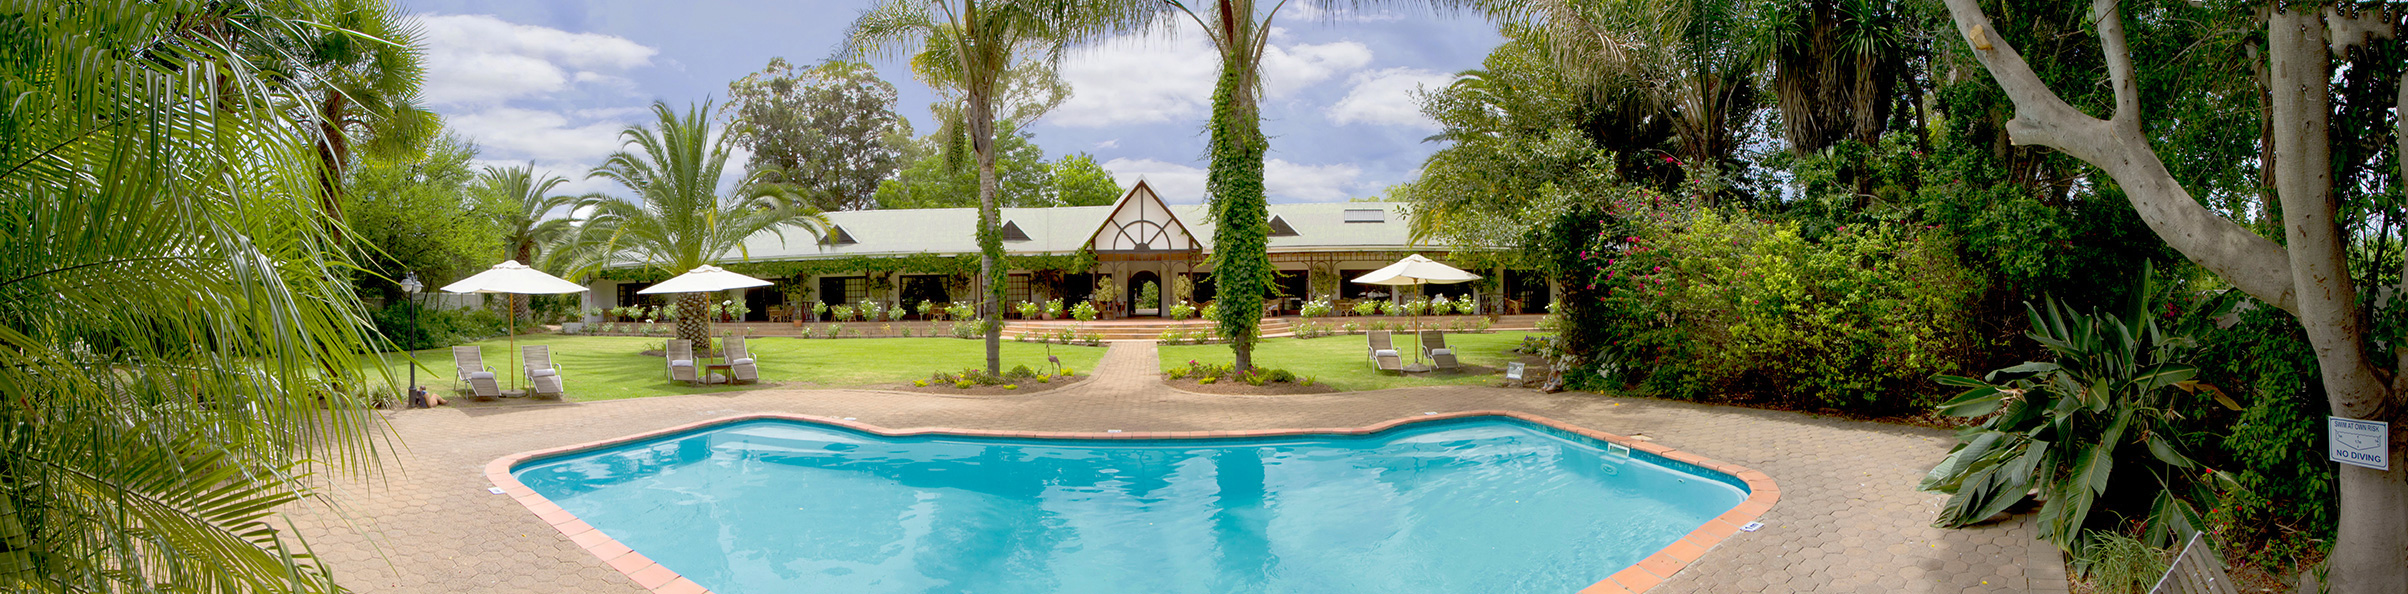 Hlangana Lodge Swimming Pool